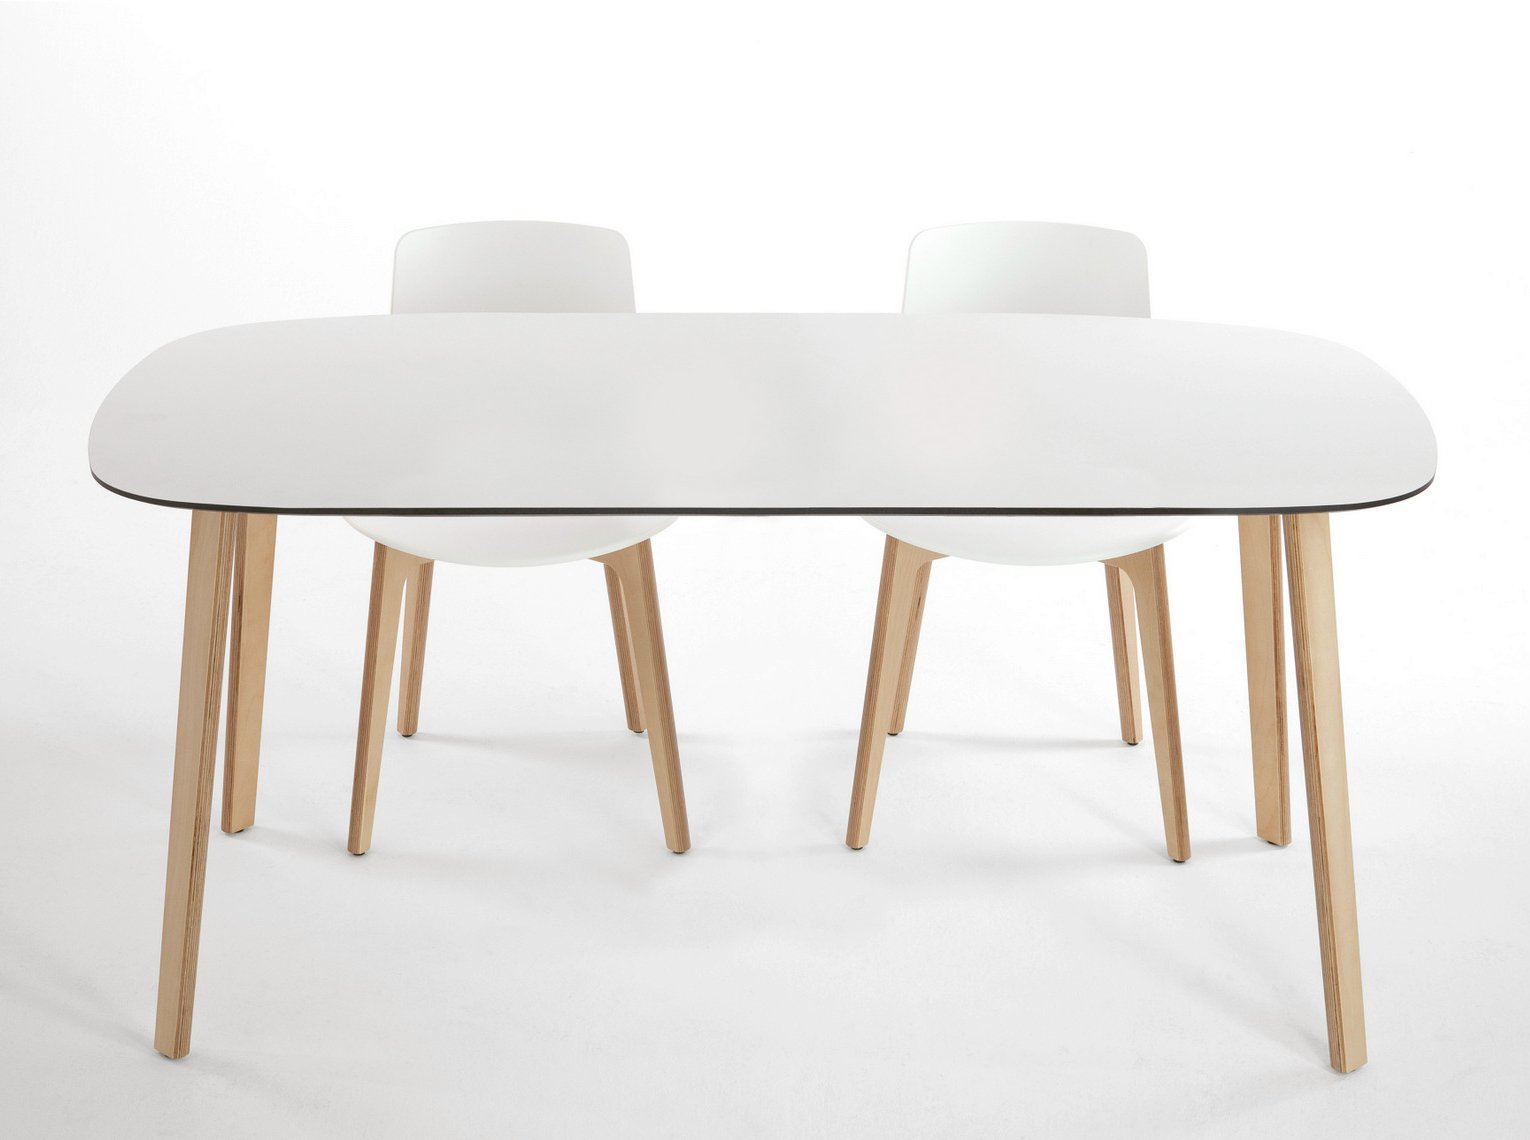 Lottus wood table rectangulaire by enea design lievore for Table ovale avec rallonge salle a manger